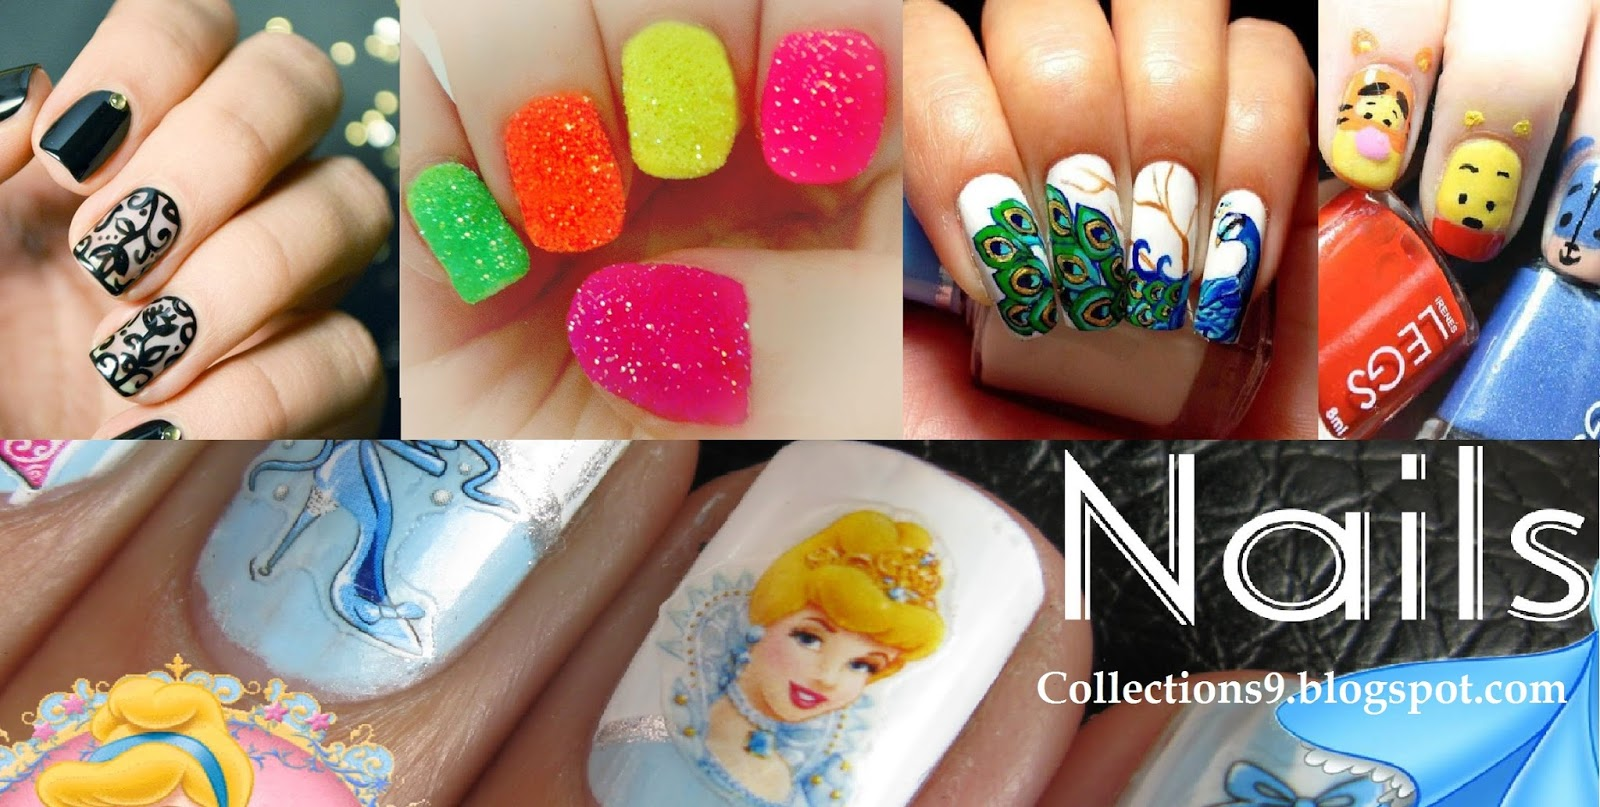 Nail Polish Designs Easy at Home Step by Step | NSA .blog